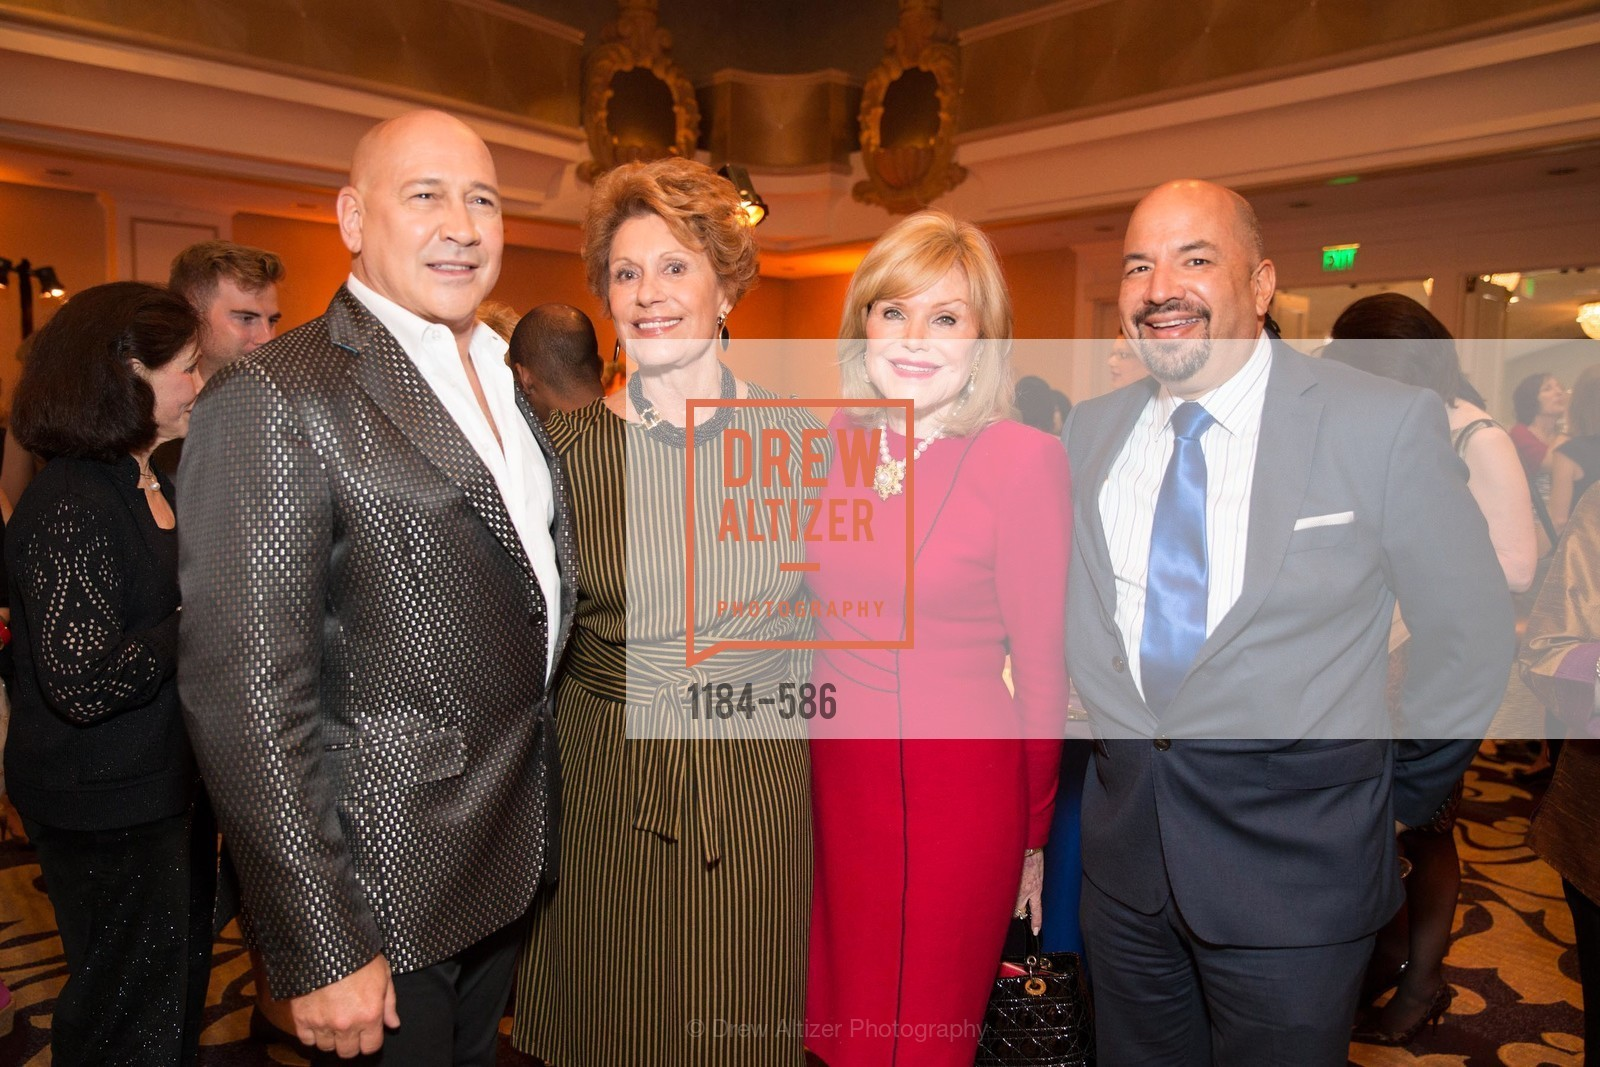 Carmen Marc Valvo, Sandy Merrando, Nancy Greenbach, Ted Hannig, 2014 Bay Area ARTHRITIS AUXILLIARY Benefit & Fashion Show, US, October 1st, 2014,Drew Altizer, Drew Altizer Photography, full-service agency, private events, San Francisco photographer, photographer california